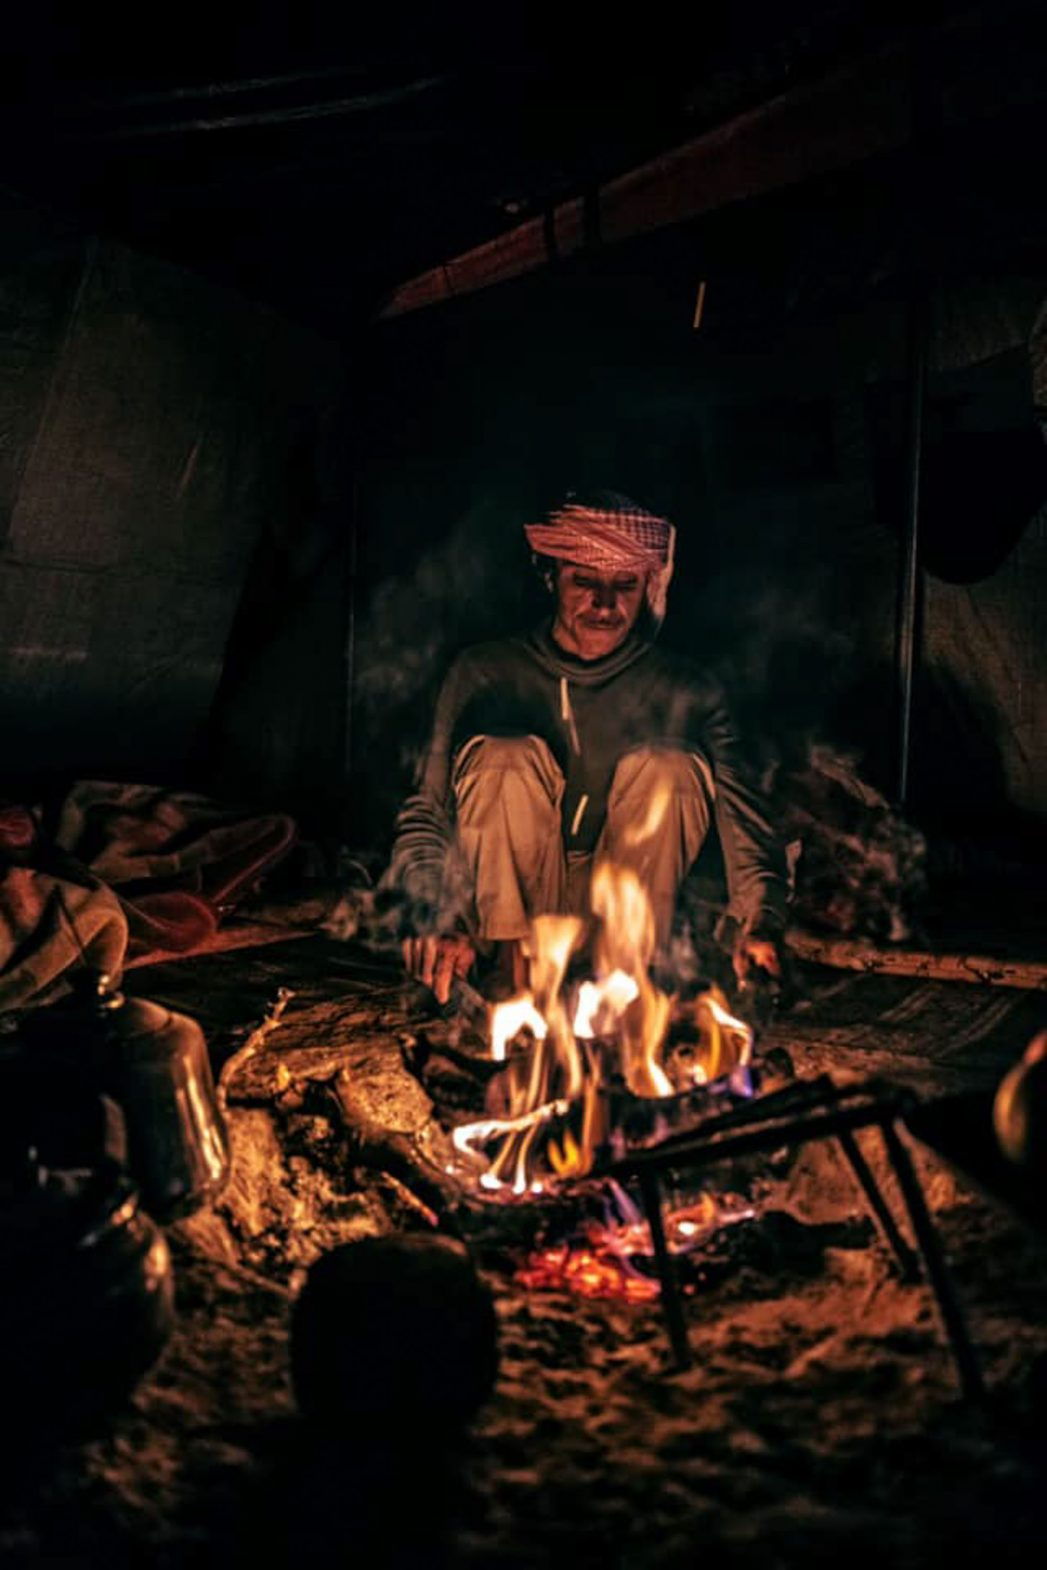 A Bedouin lights the fire while camping in Petra.